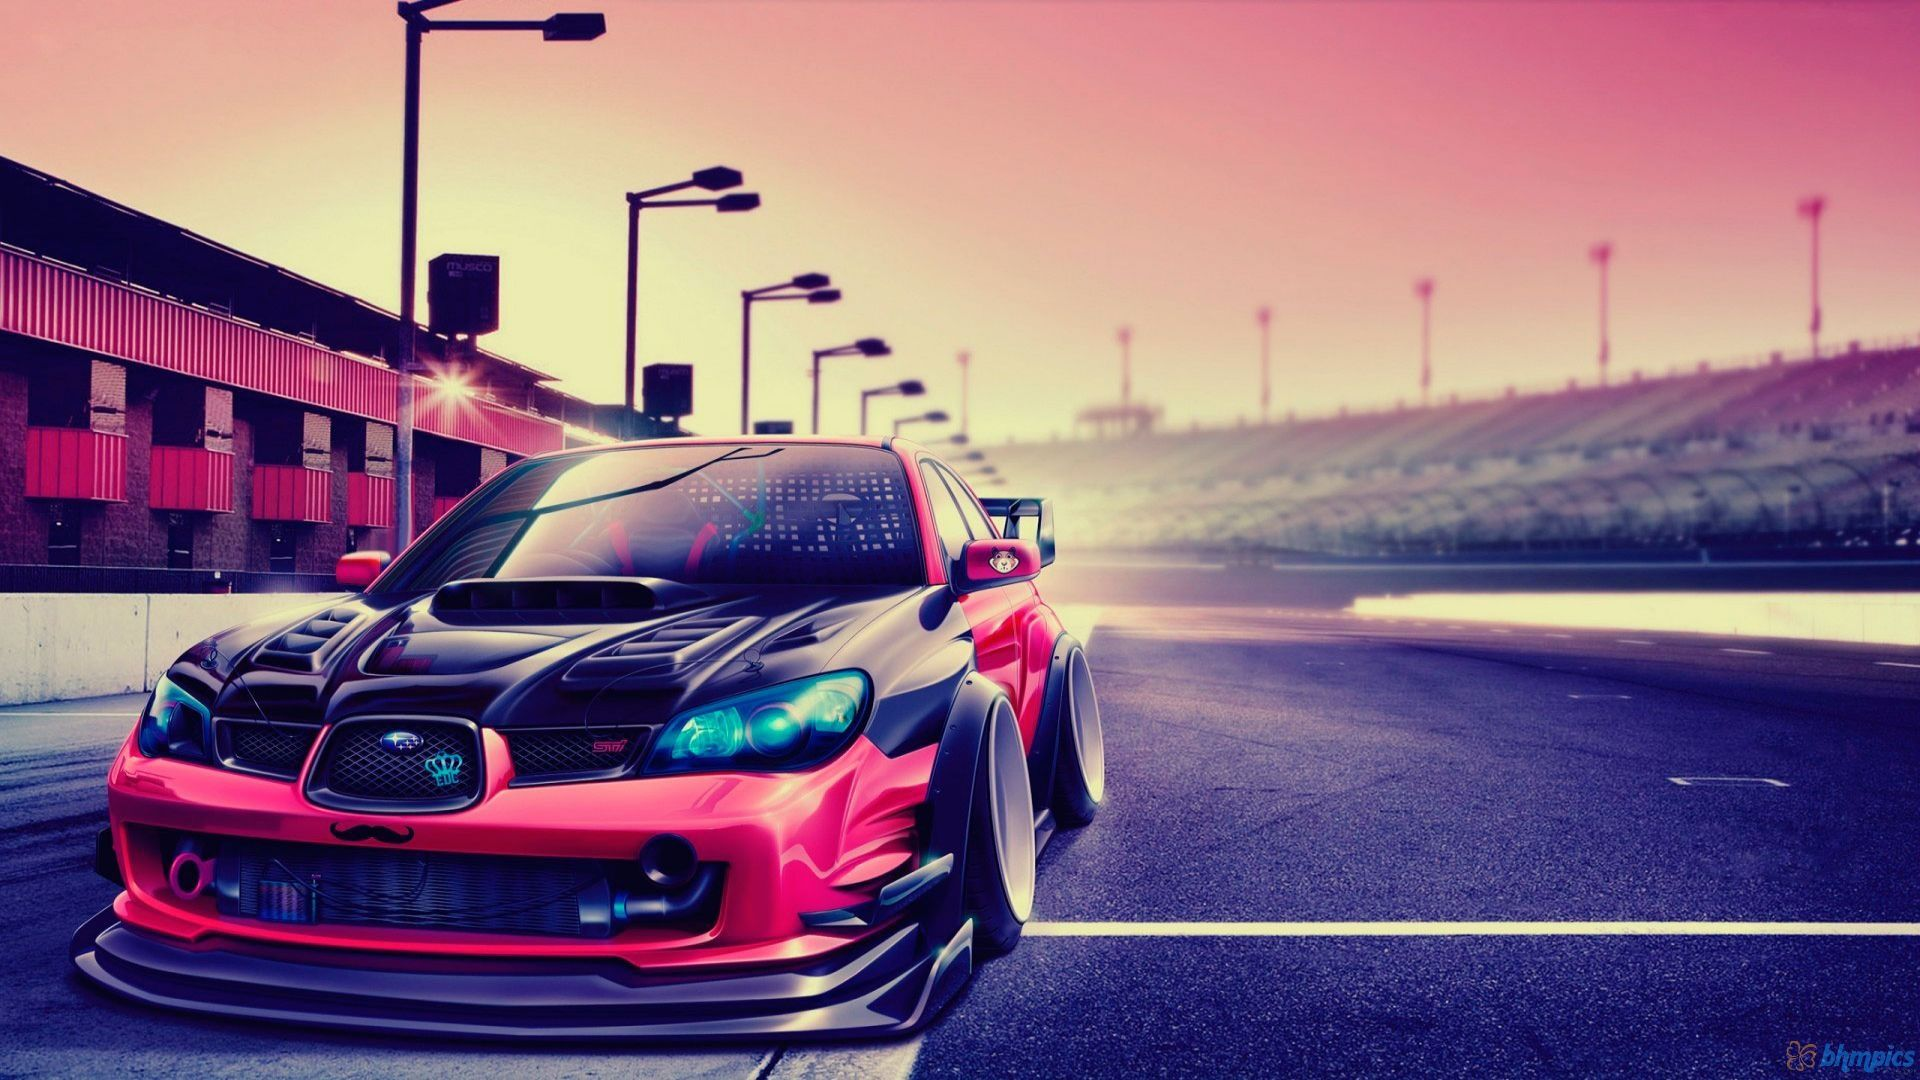 tuned cars hd wallpapers - photo #6